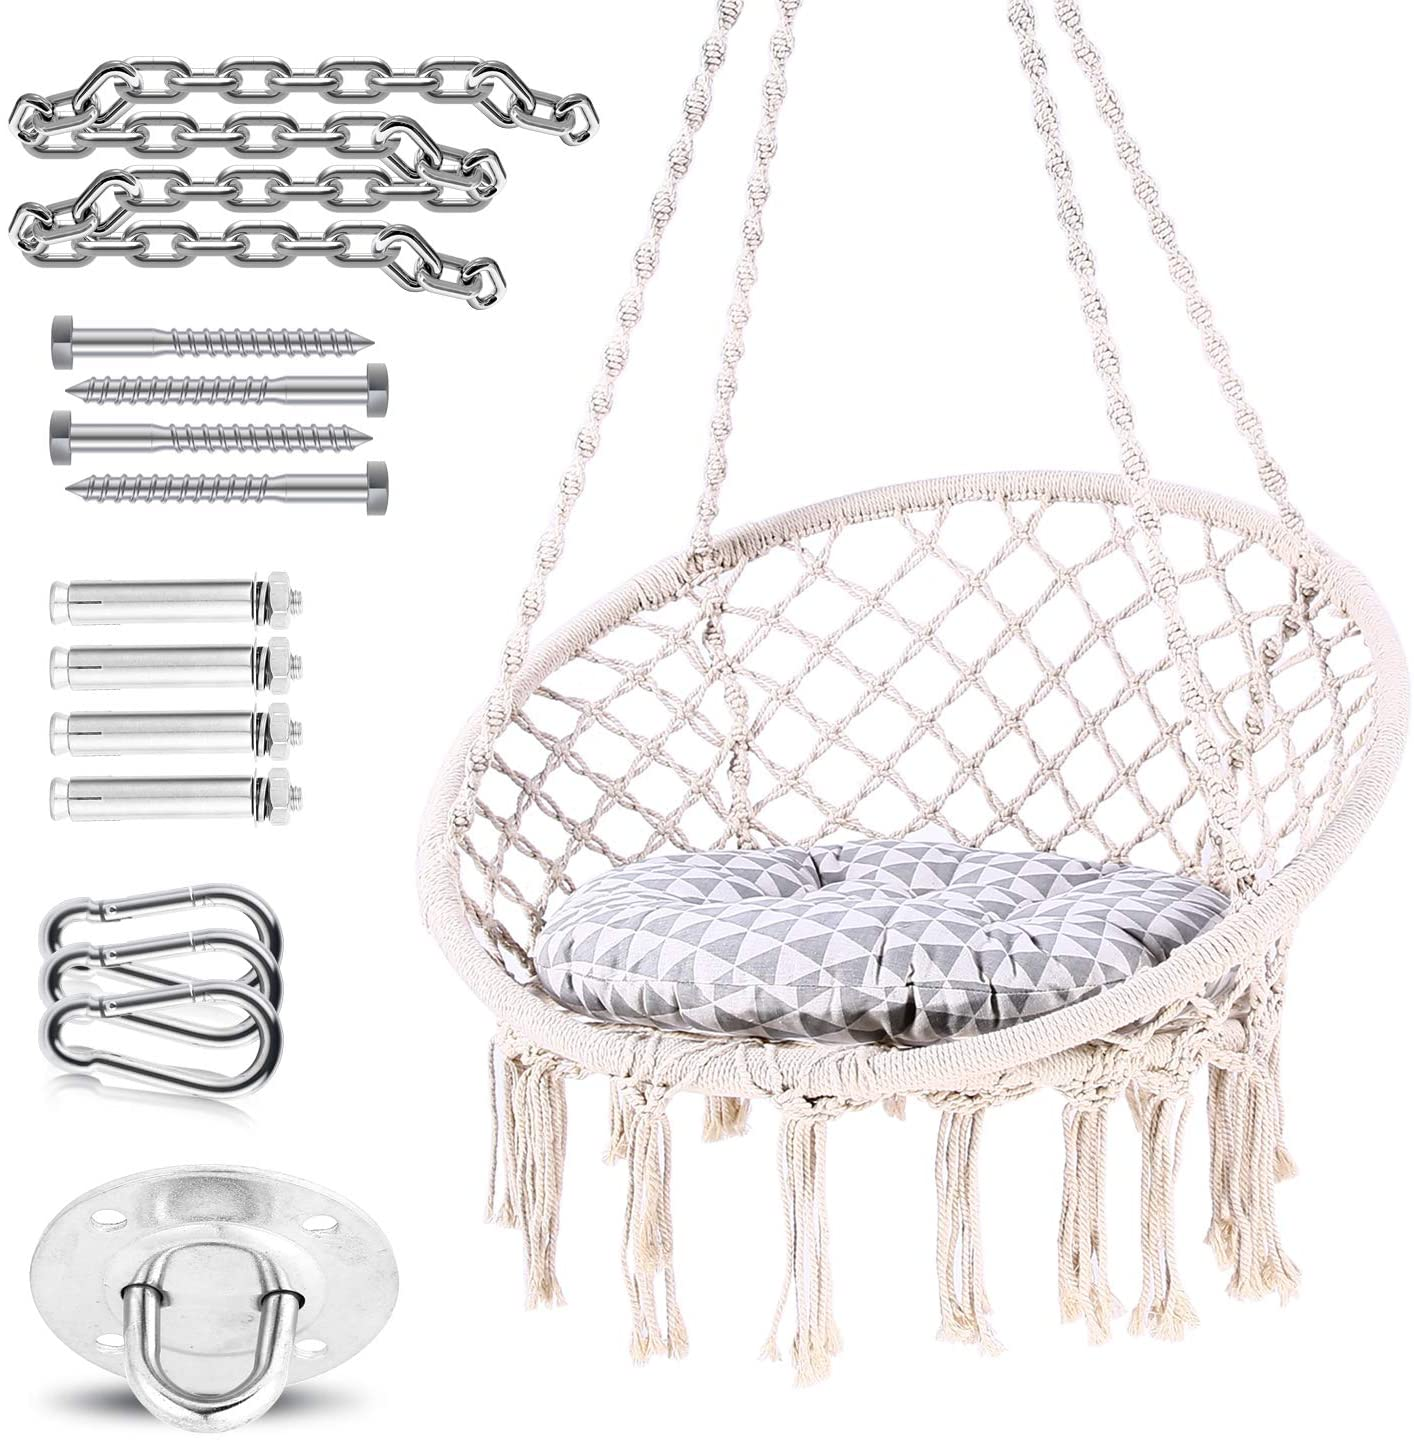 Ohuhu Hammock Chair Hanging Chair Swing with Soft Cushion Durable Hanging Hardware Kit, 100 Cotton Rope Indoor Macrame Swing Chairs for Bedrooms, Great Gifts for Birthday Xmas Christmas